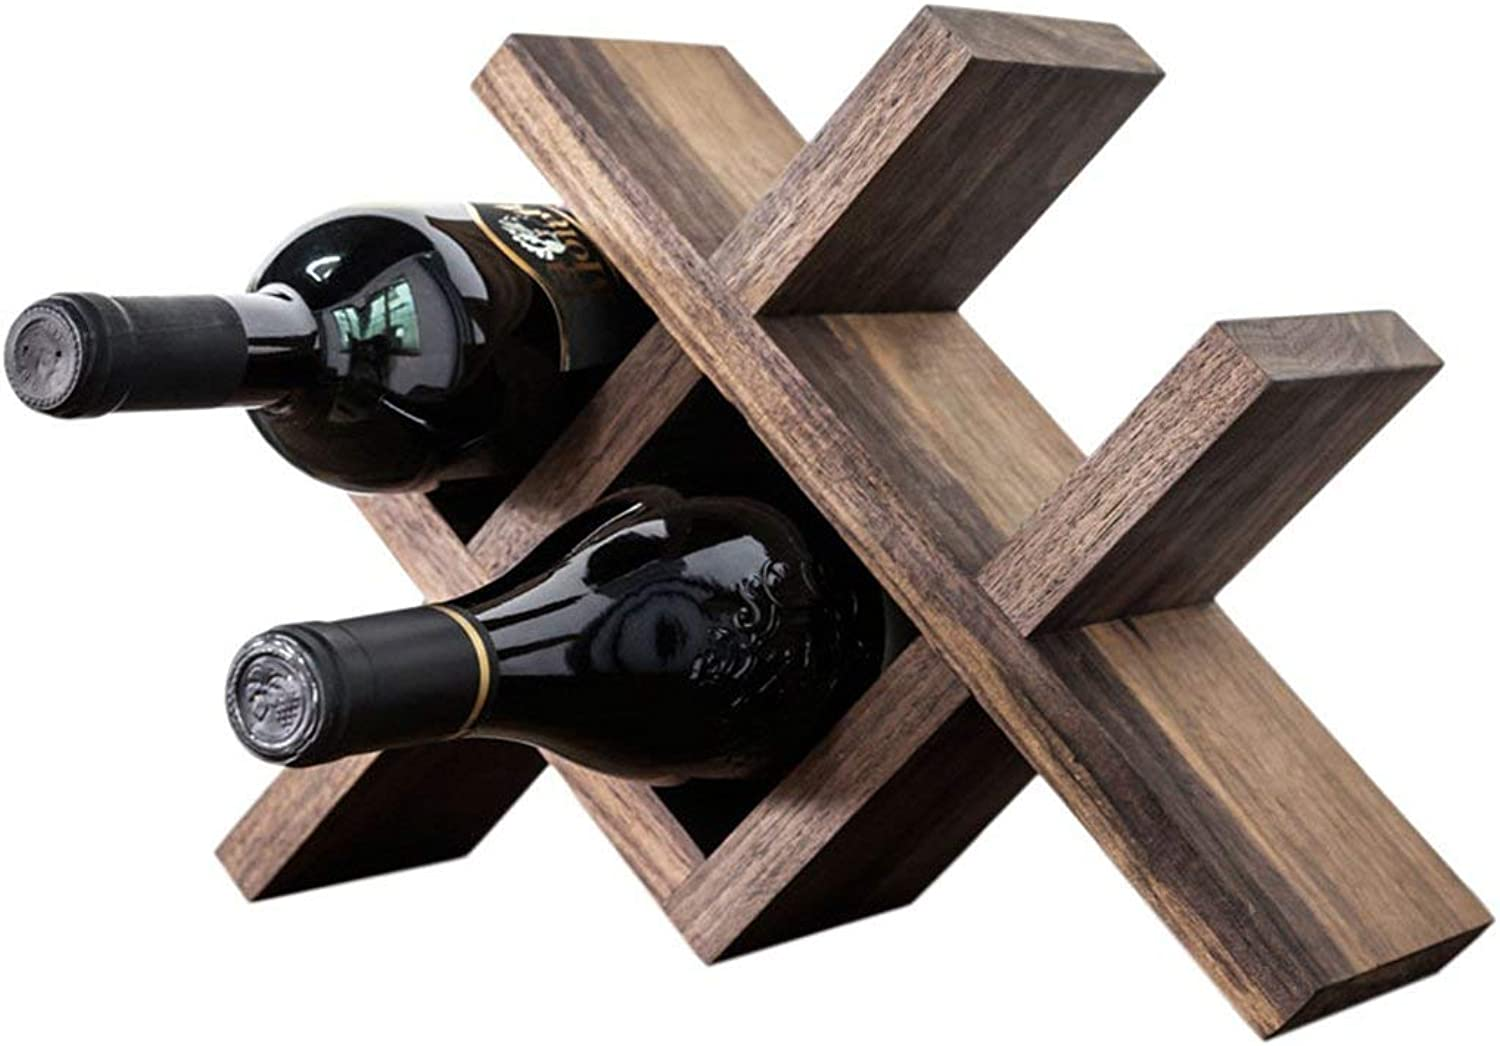 Red Wine Shelf Wine Rack Household Desktop Wood Wine Rack Solid Wood Frame Shelving Decoration Gifts and Happiness (color   Brown) (color   Brown)